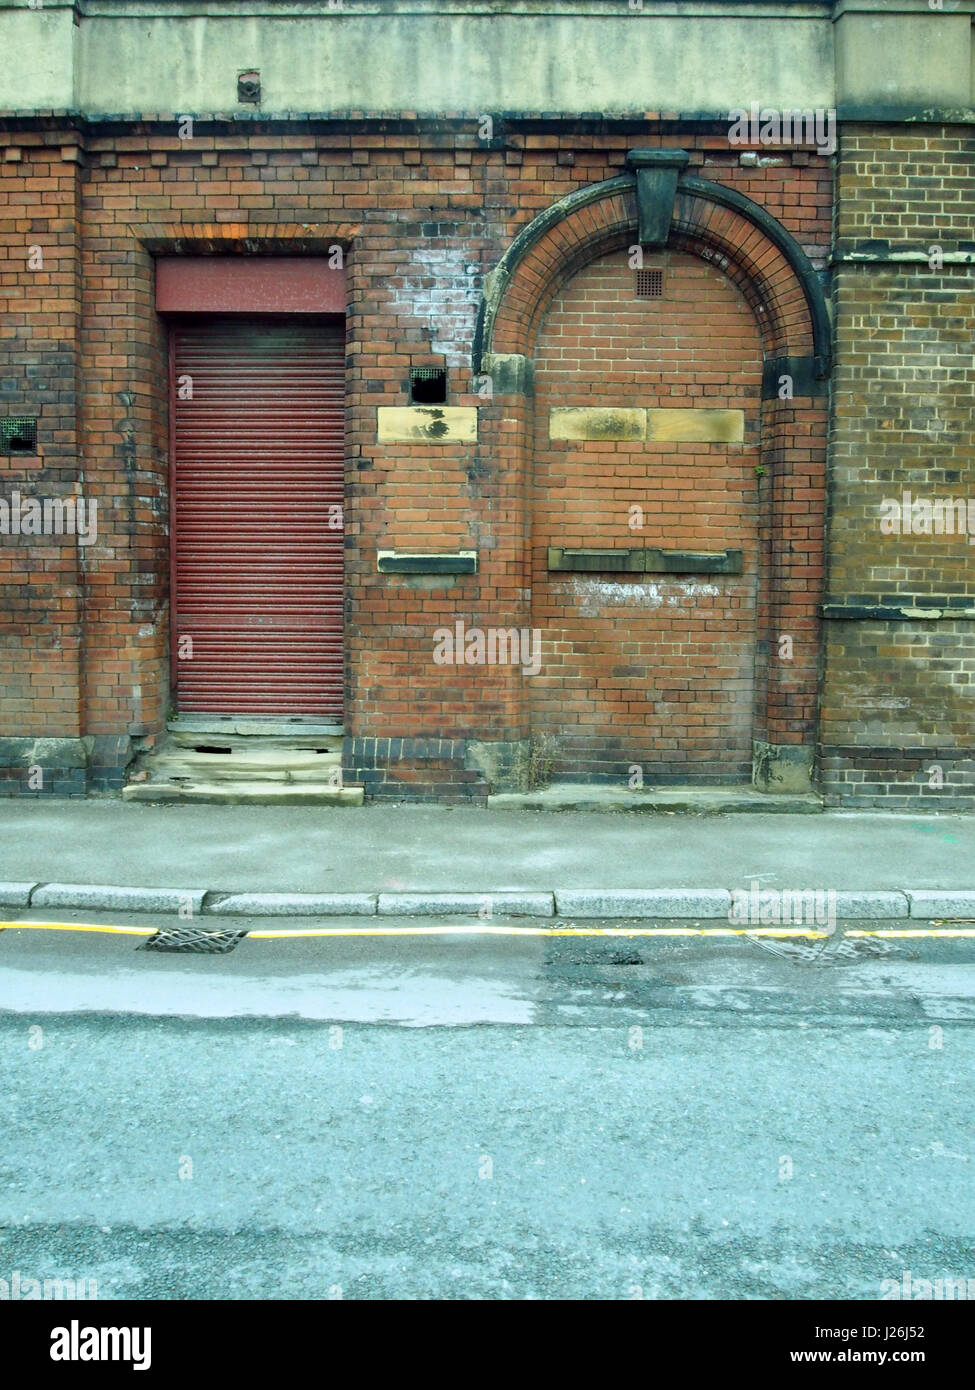 Stock Photo - old abandoned brick building with shutter and bricked up doorway and pavement & old abandoned brick building with shutter and bricked up doorway ... Pezcame.Com